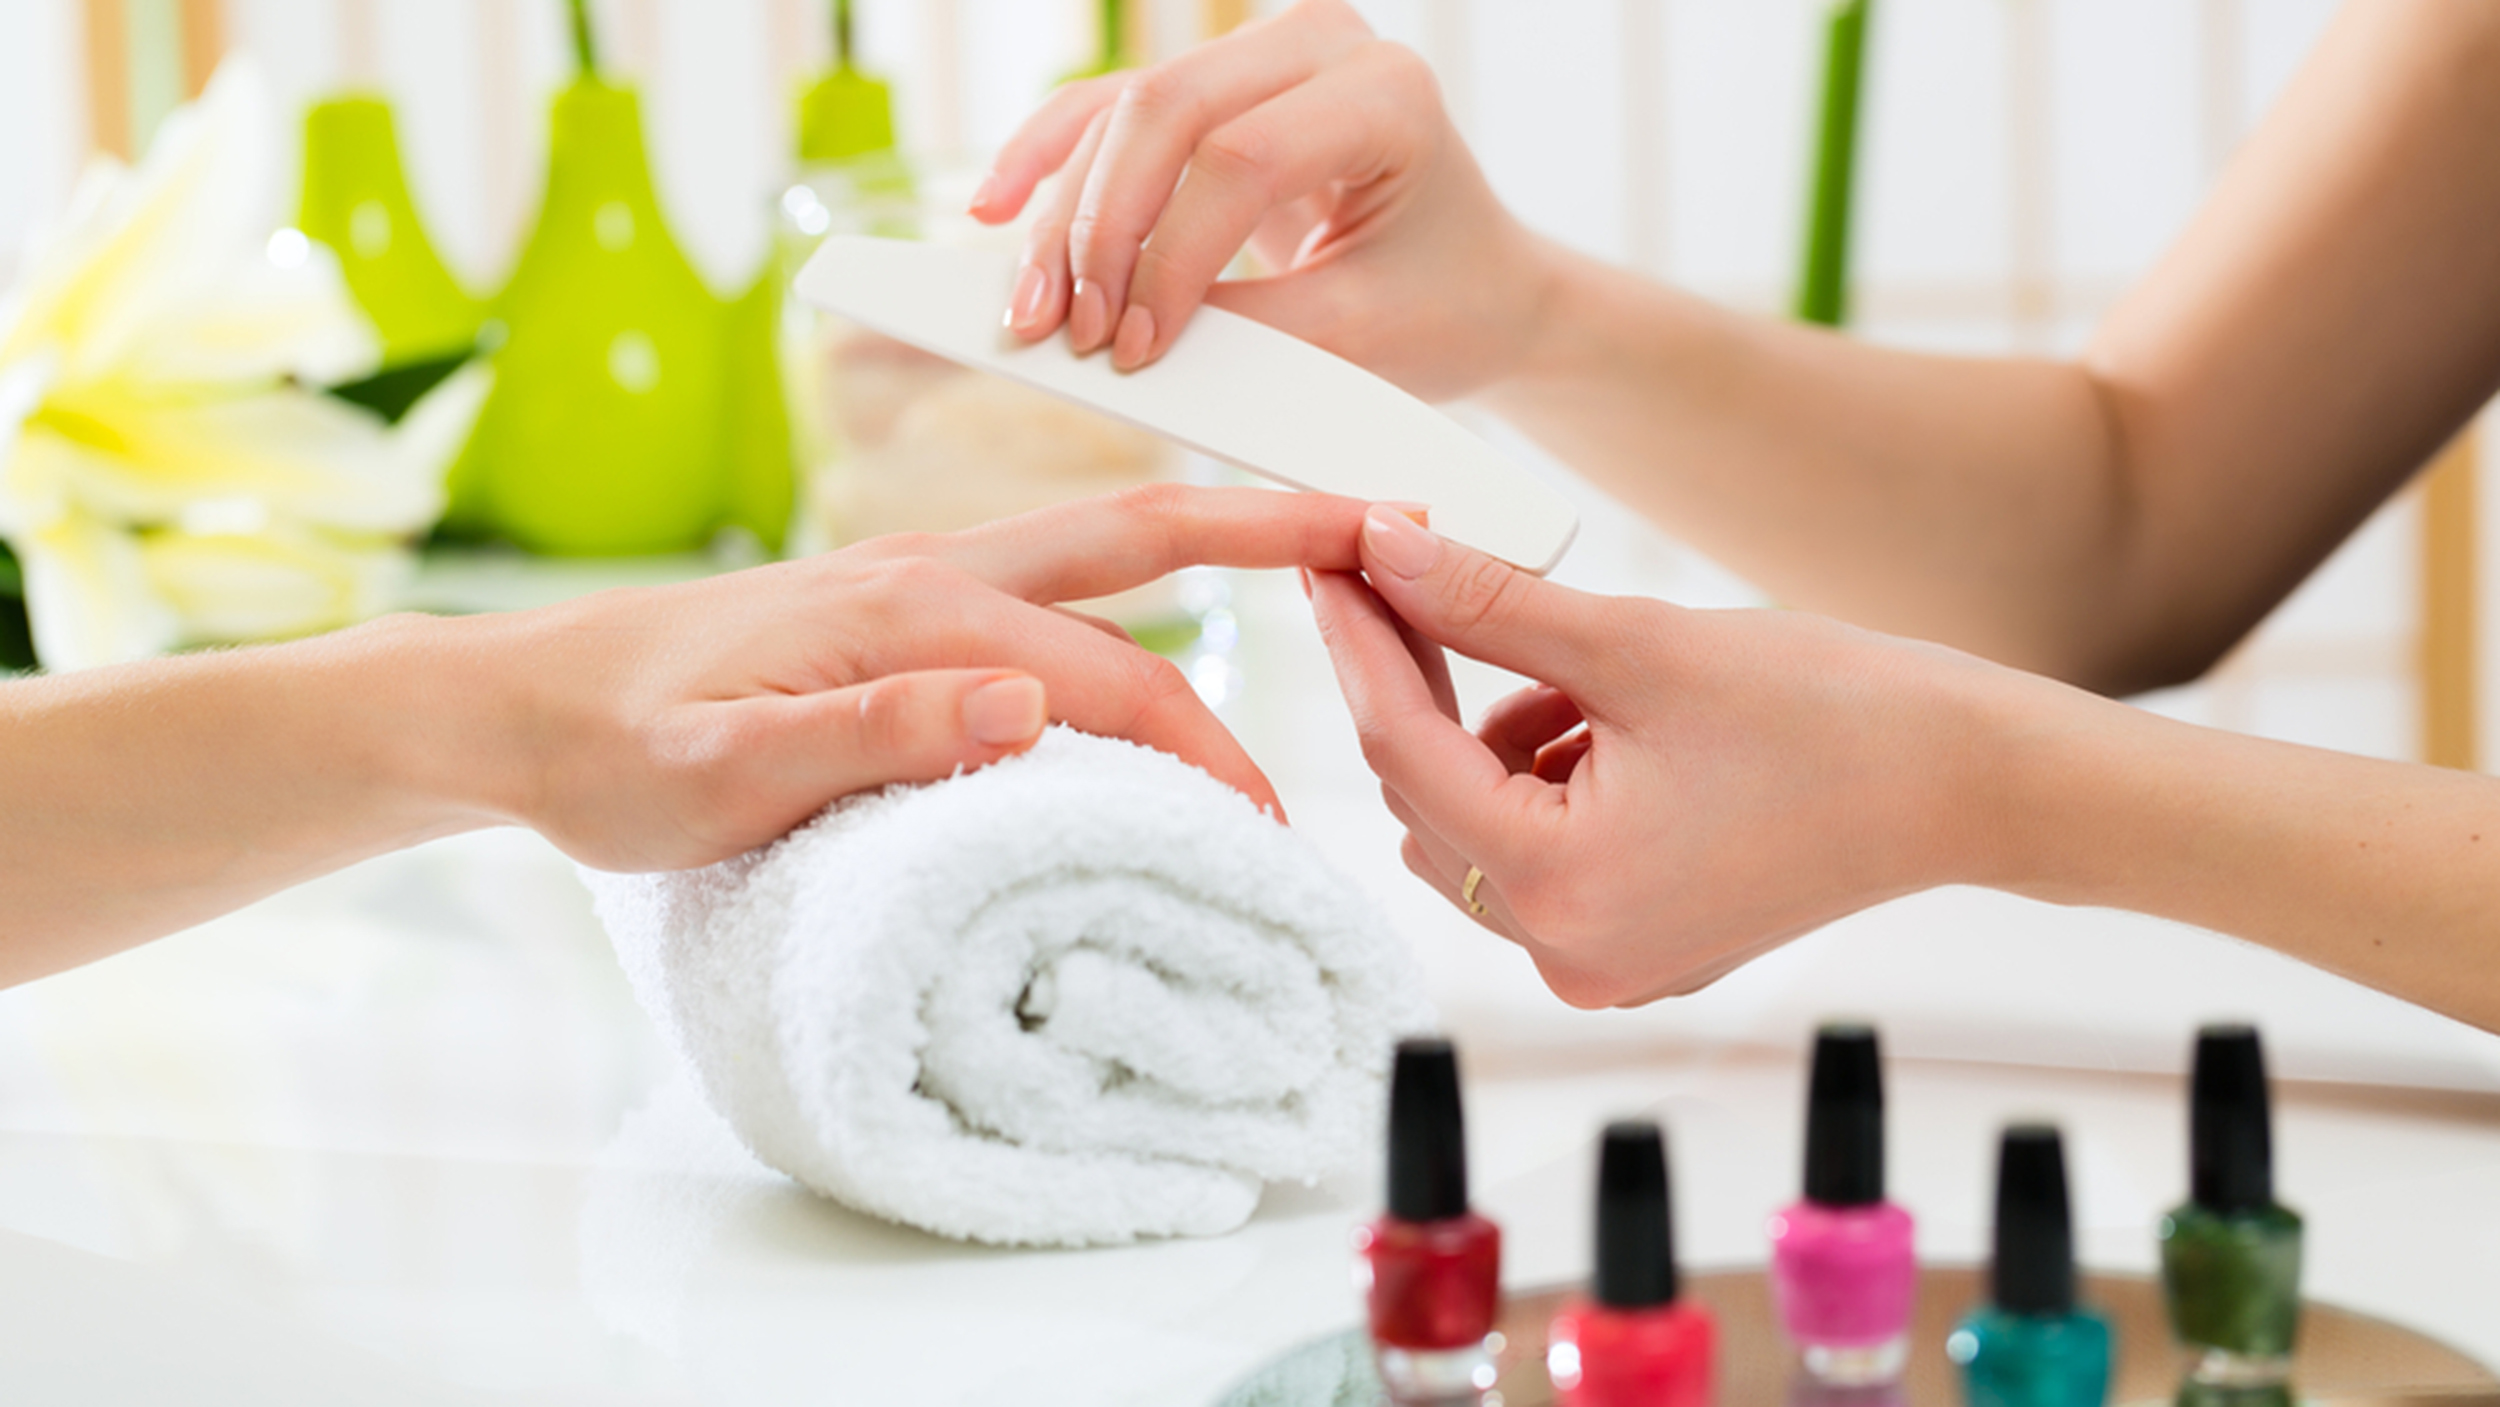 Nail salon etiquette How much should you tip  TODAYcom